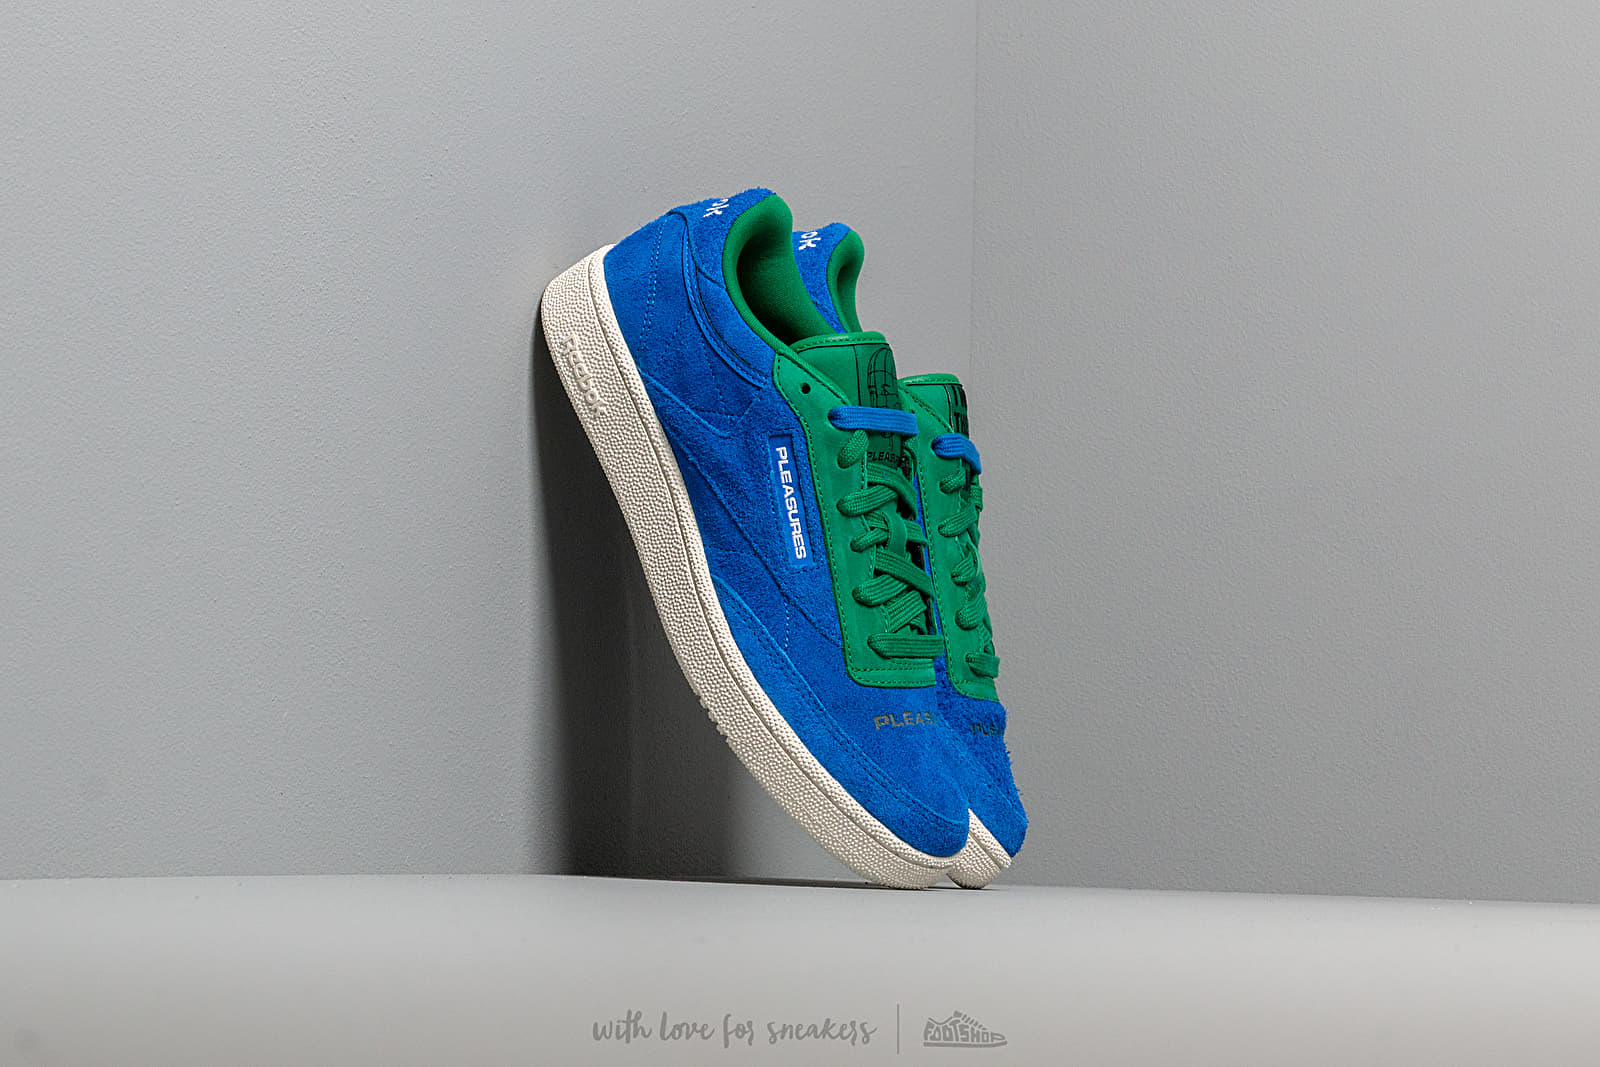 Reebok x Pleasures Club C 85 Vital Blue Green Chalk White